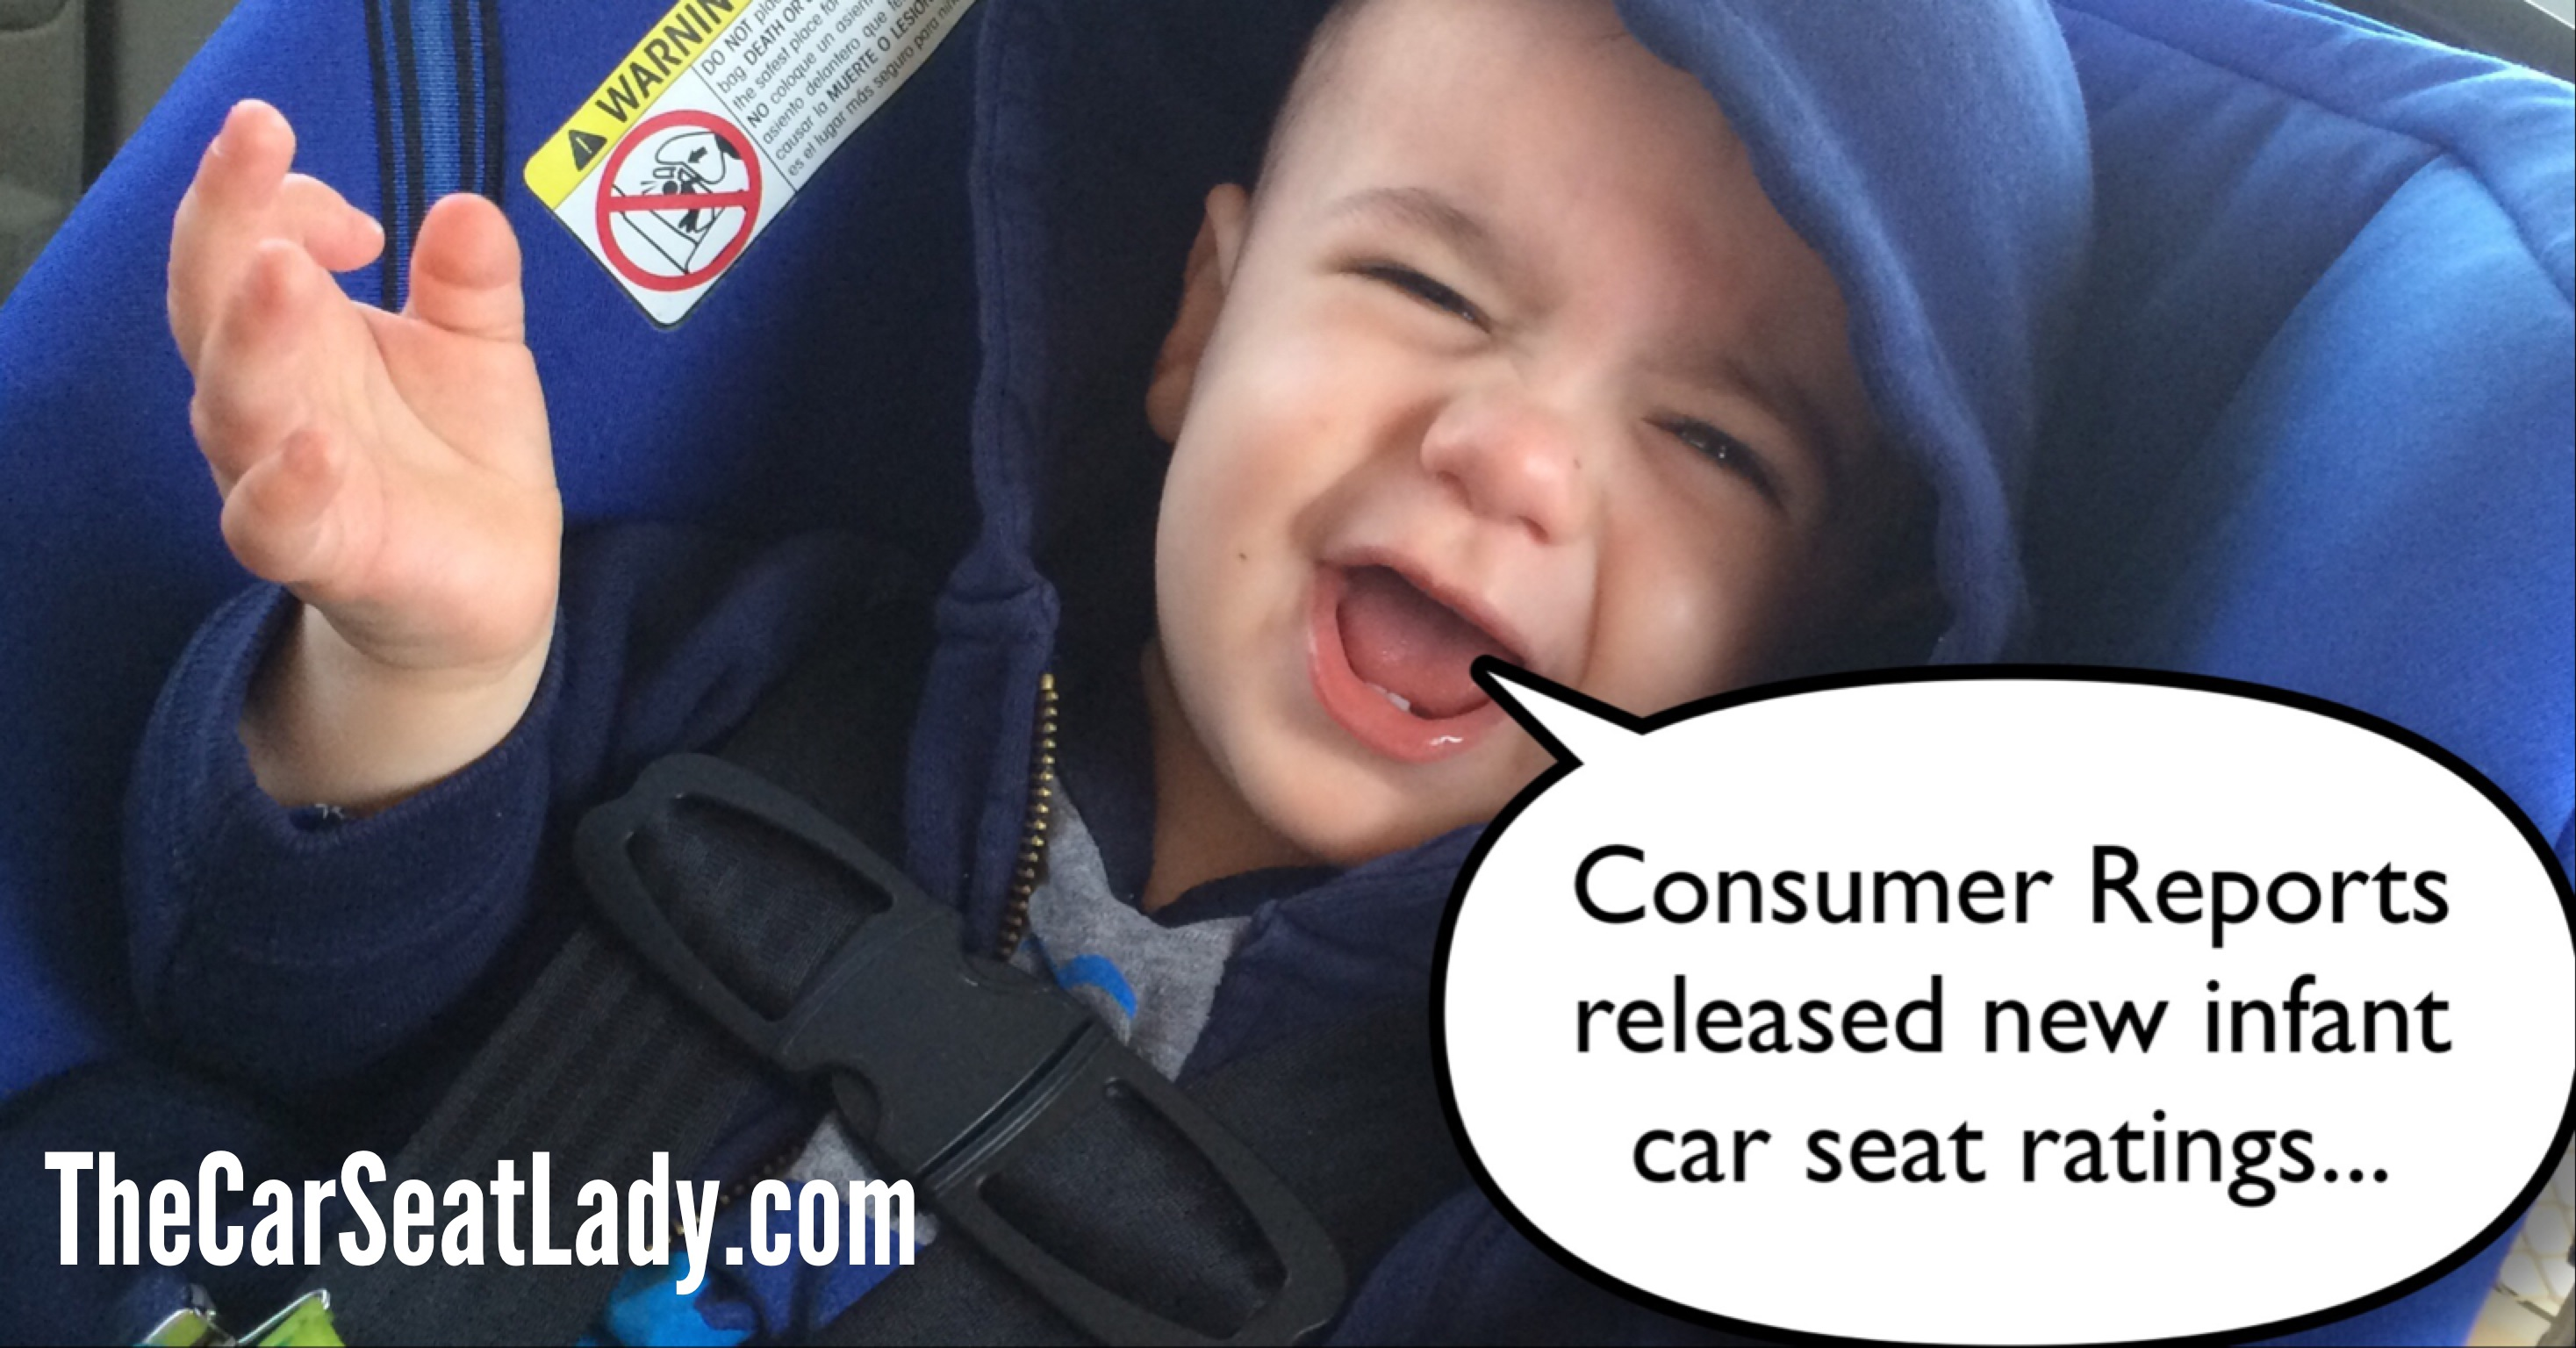 The Car Seat Lady Responds To Consumer Reports April 2014